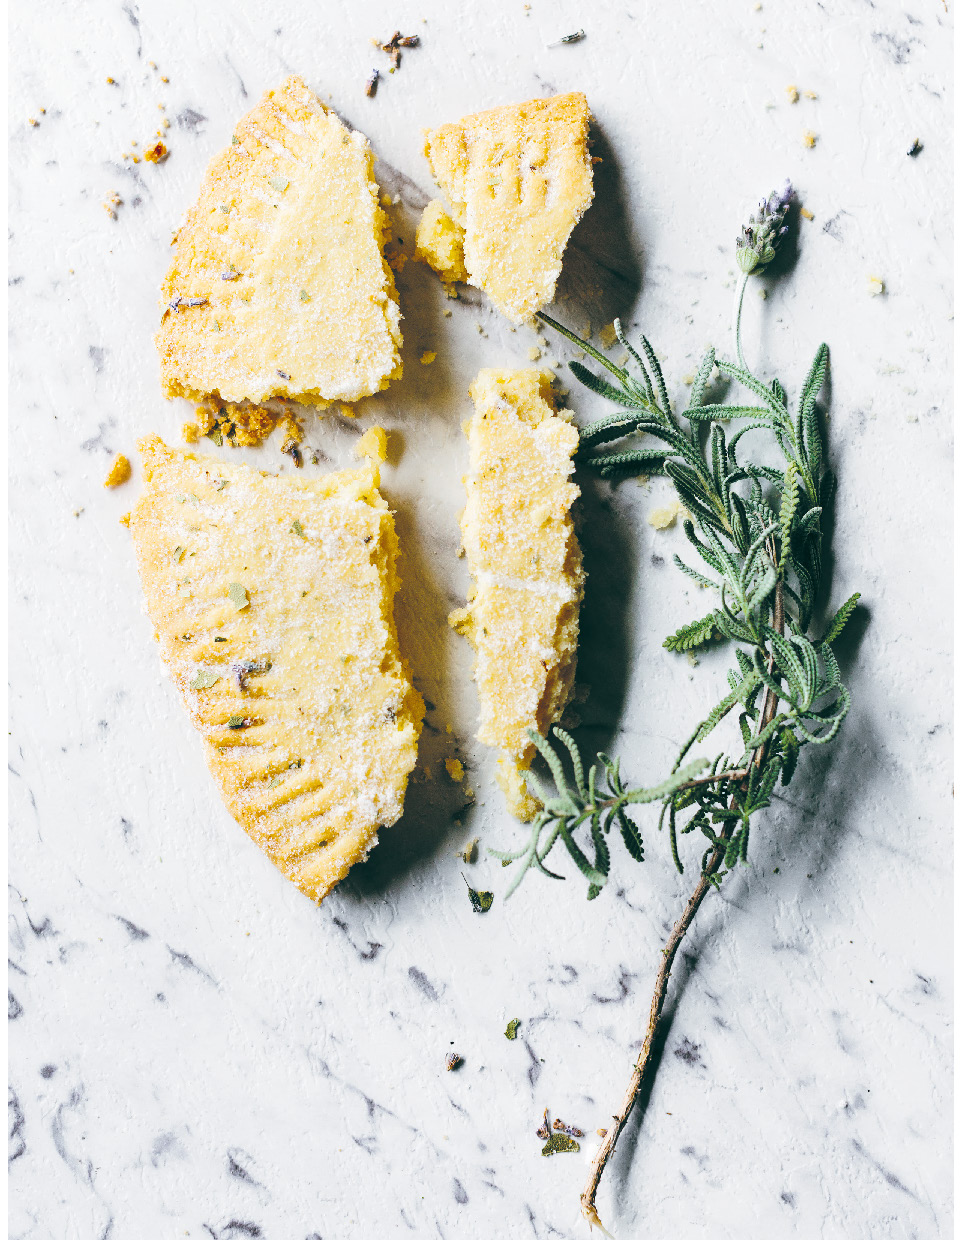 Lavender and bay leaf shortbread